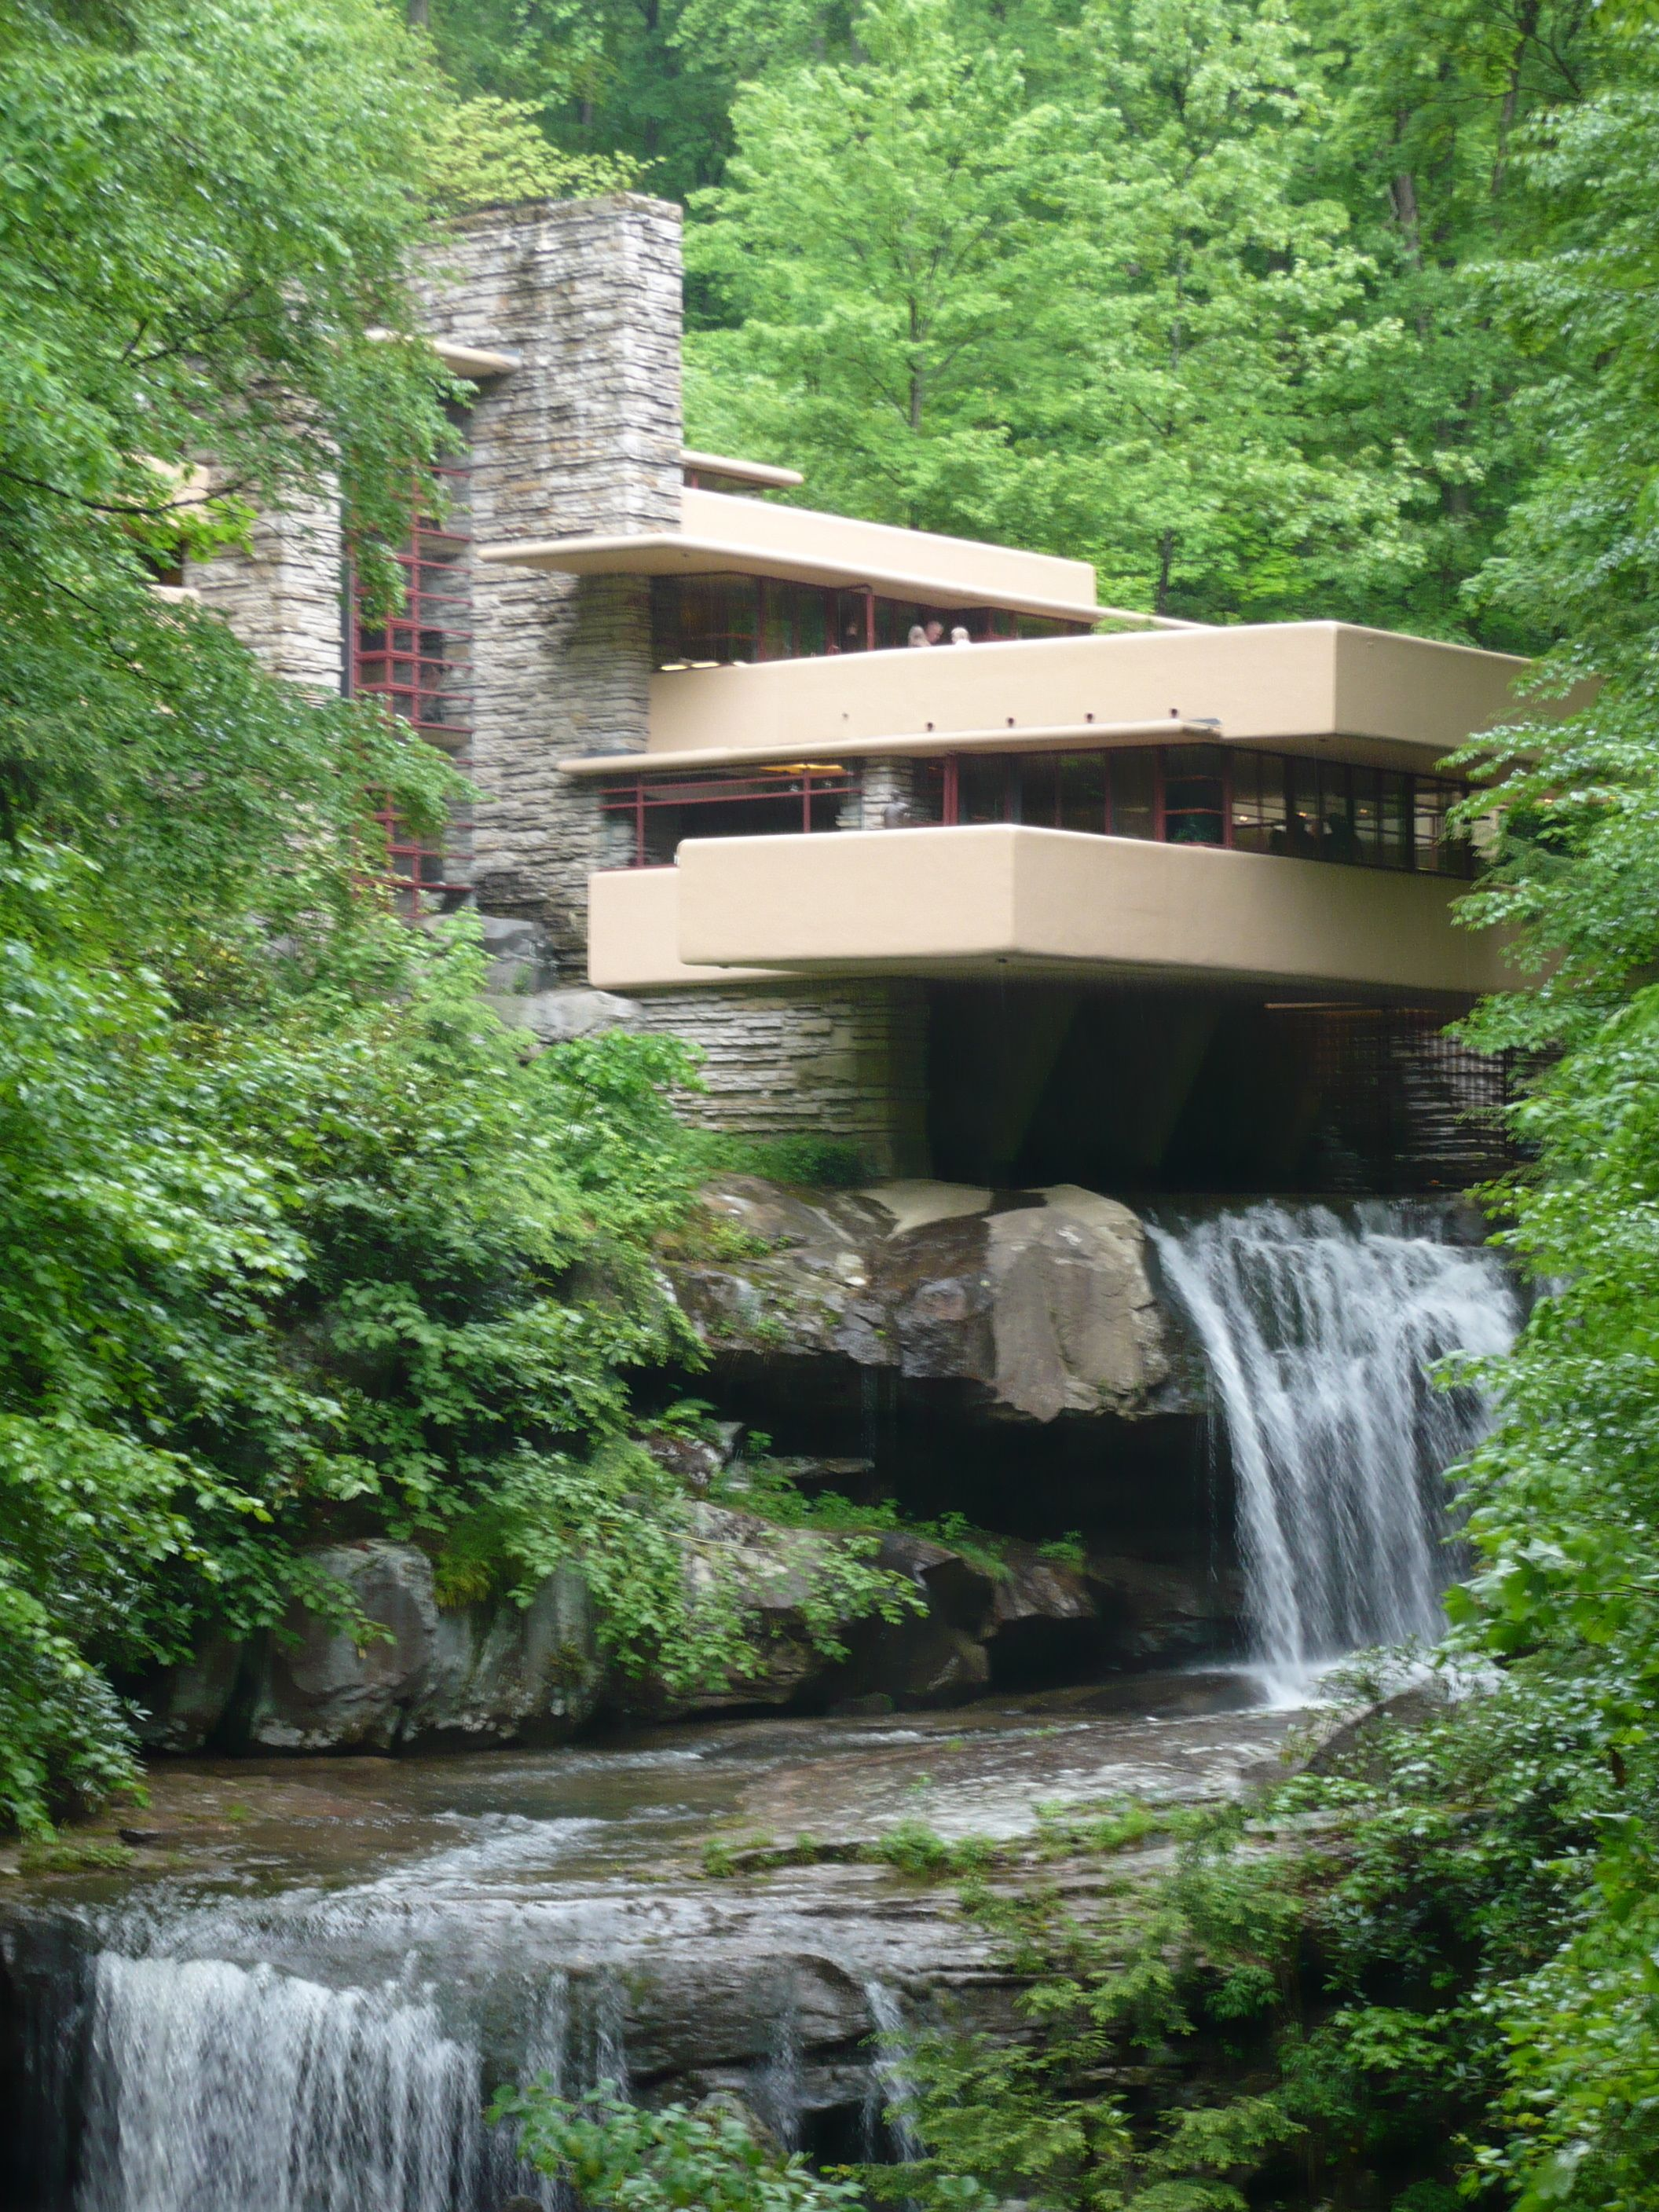 Falling Water In Pennsylvania Favorite Places Spaces